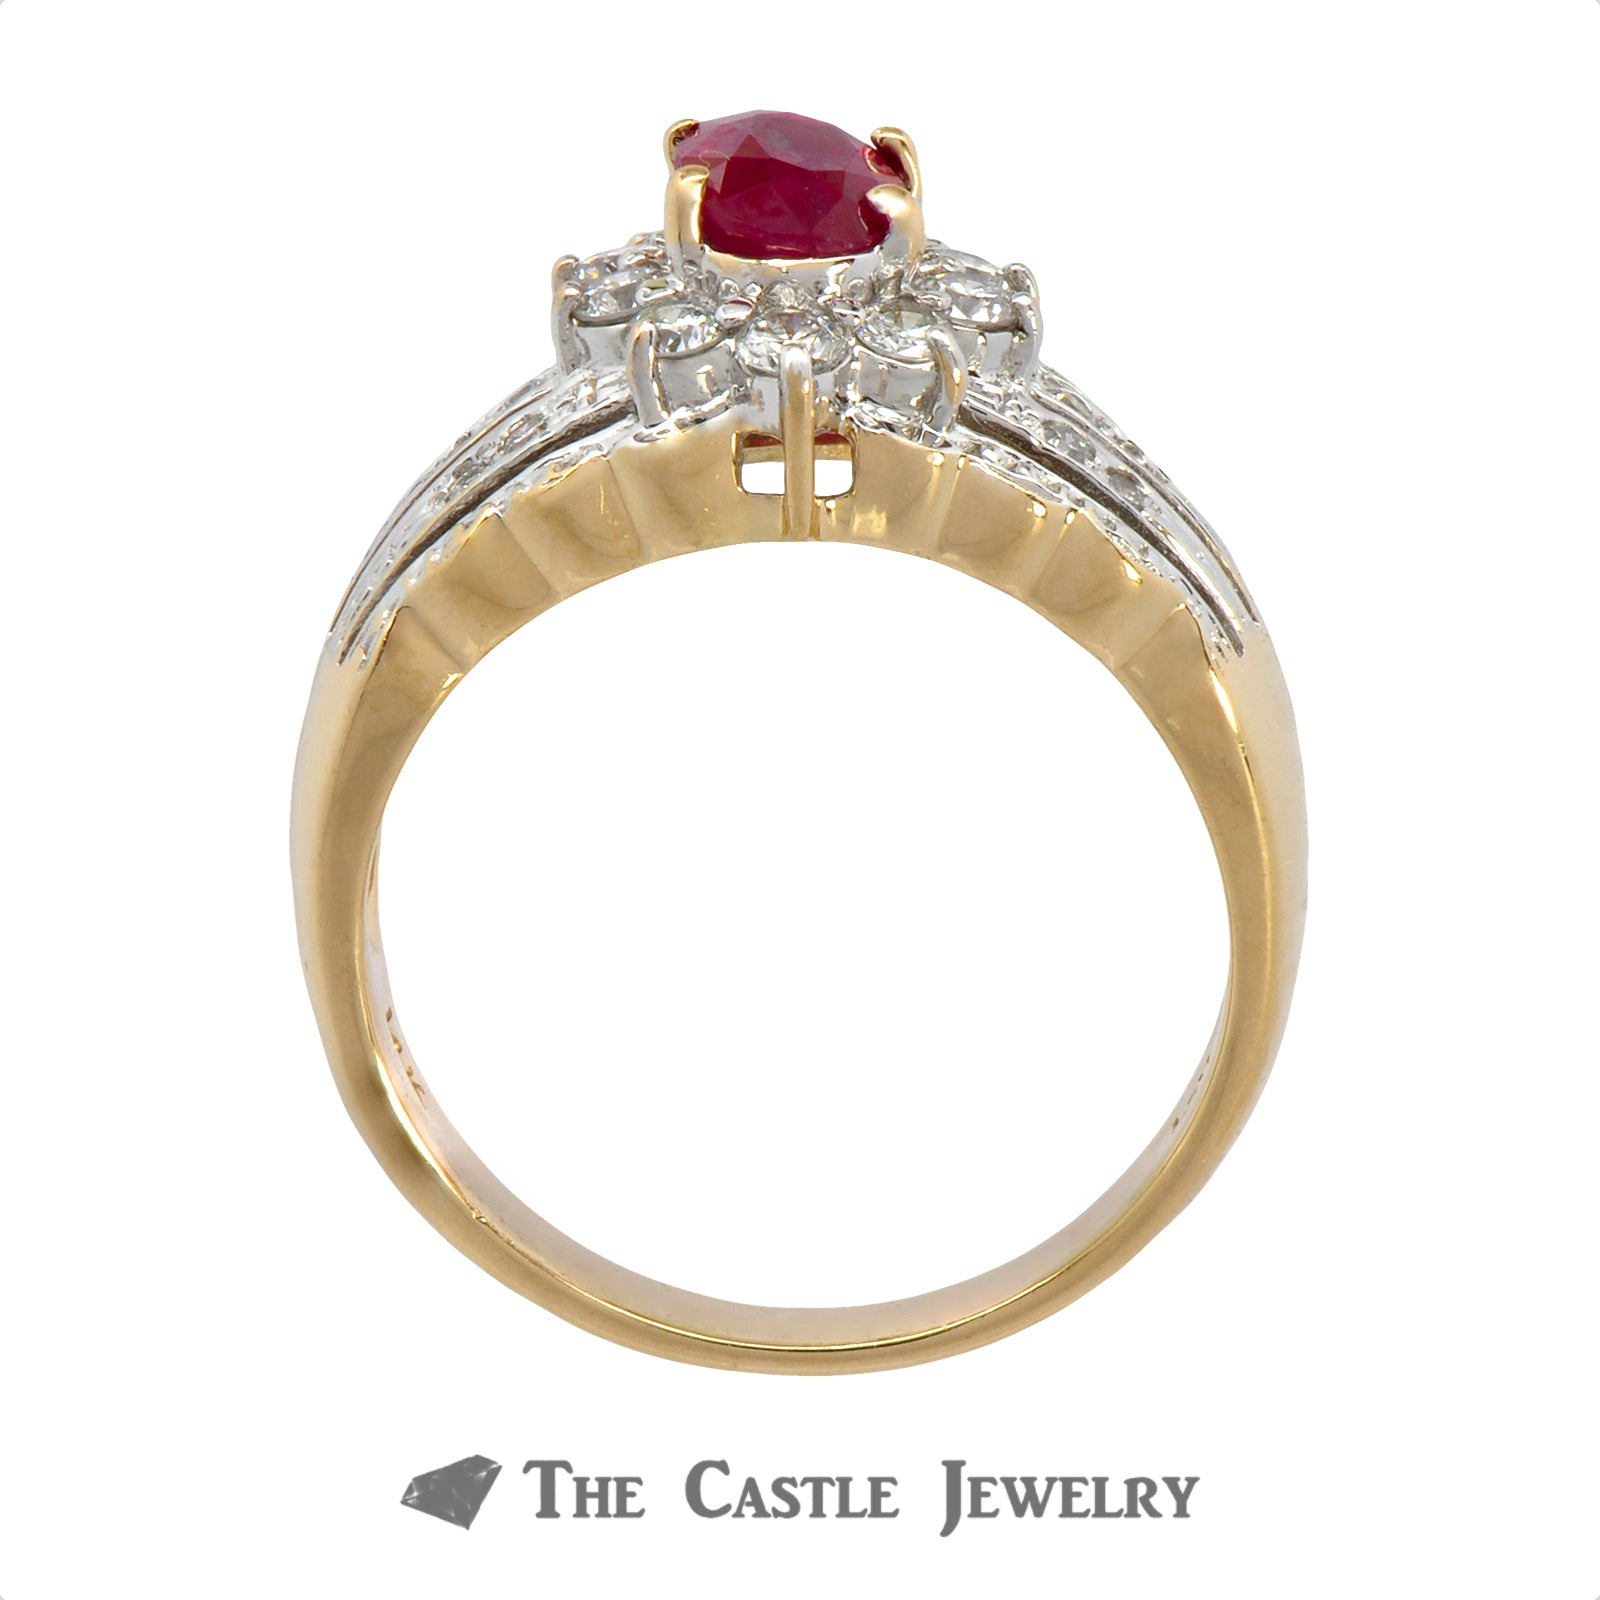 Le Vian Oval Ruby Ring with .50cttw Diamond Halo & Accents in 14k Yellow Gold-1